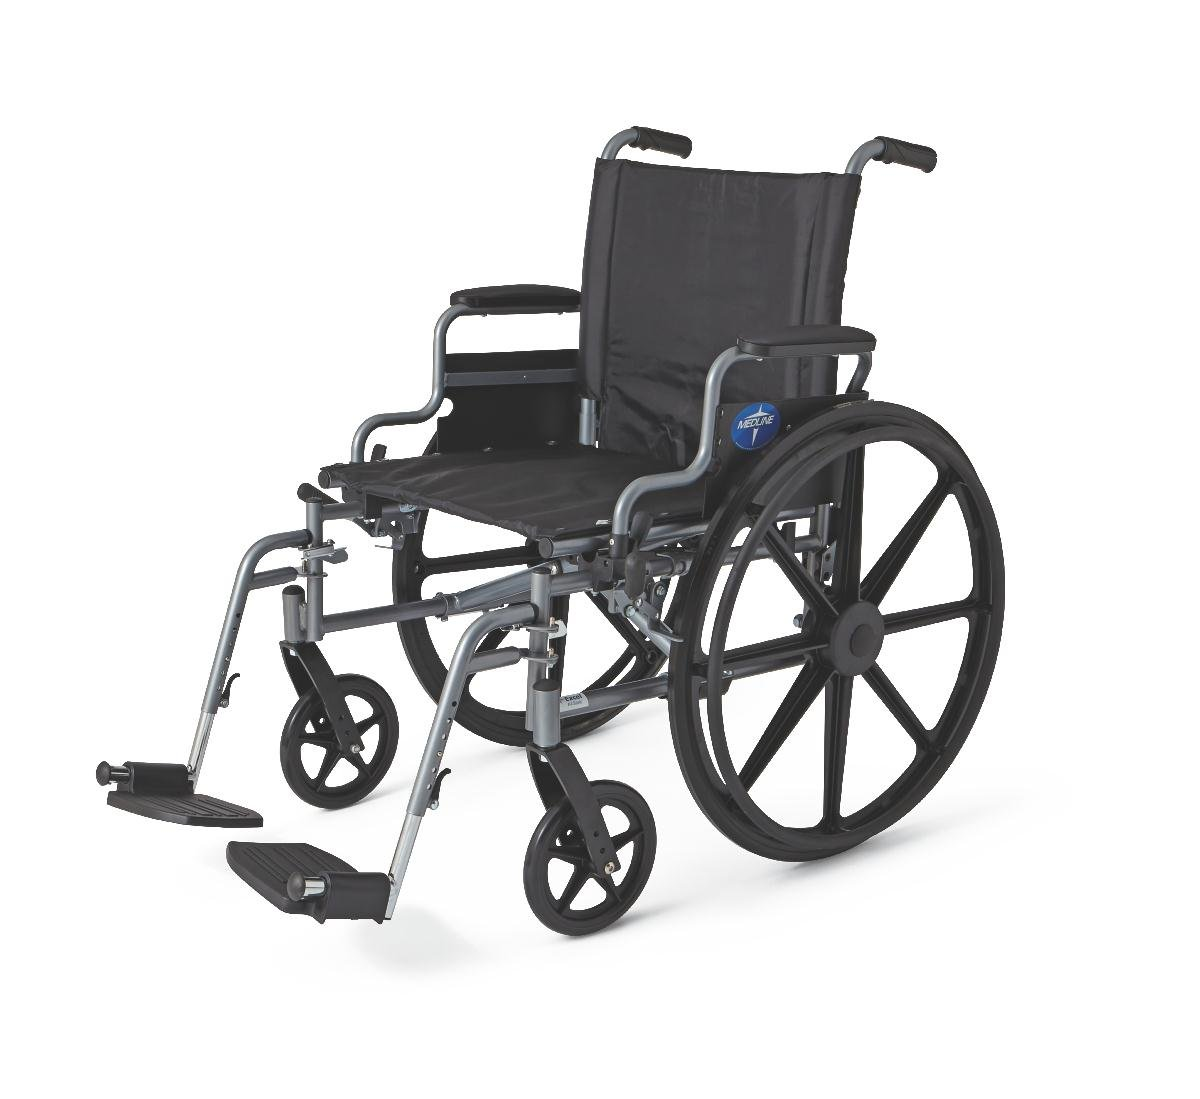 """Medline Lightweight and User-Friendly Wheelchair with Flip-Back Desk Arms and Swing-Away Leg Rests for Easy Transfers, Gray, 20"""" x 18'' Seat"""